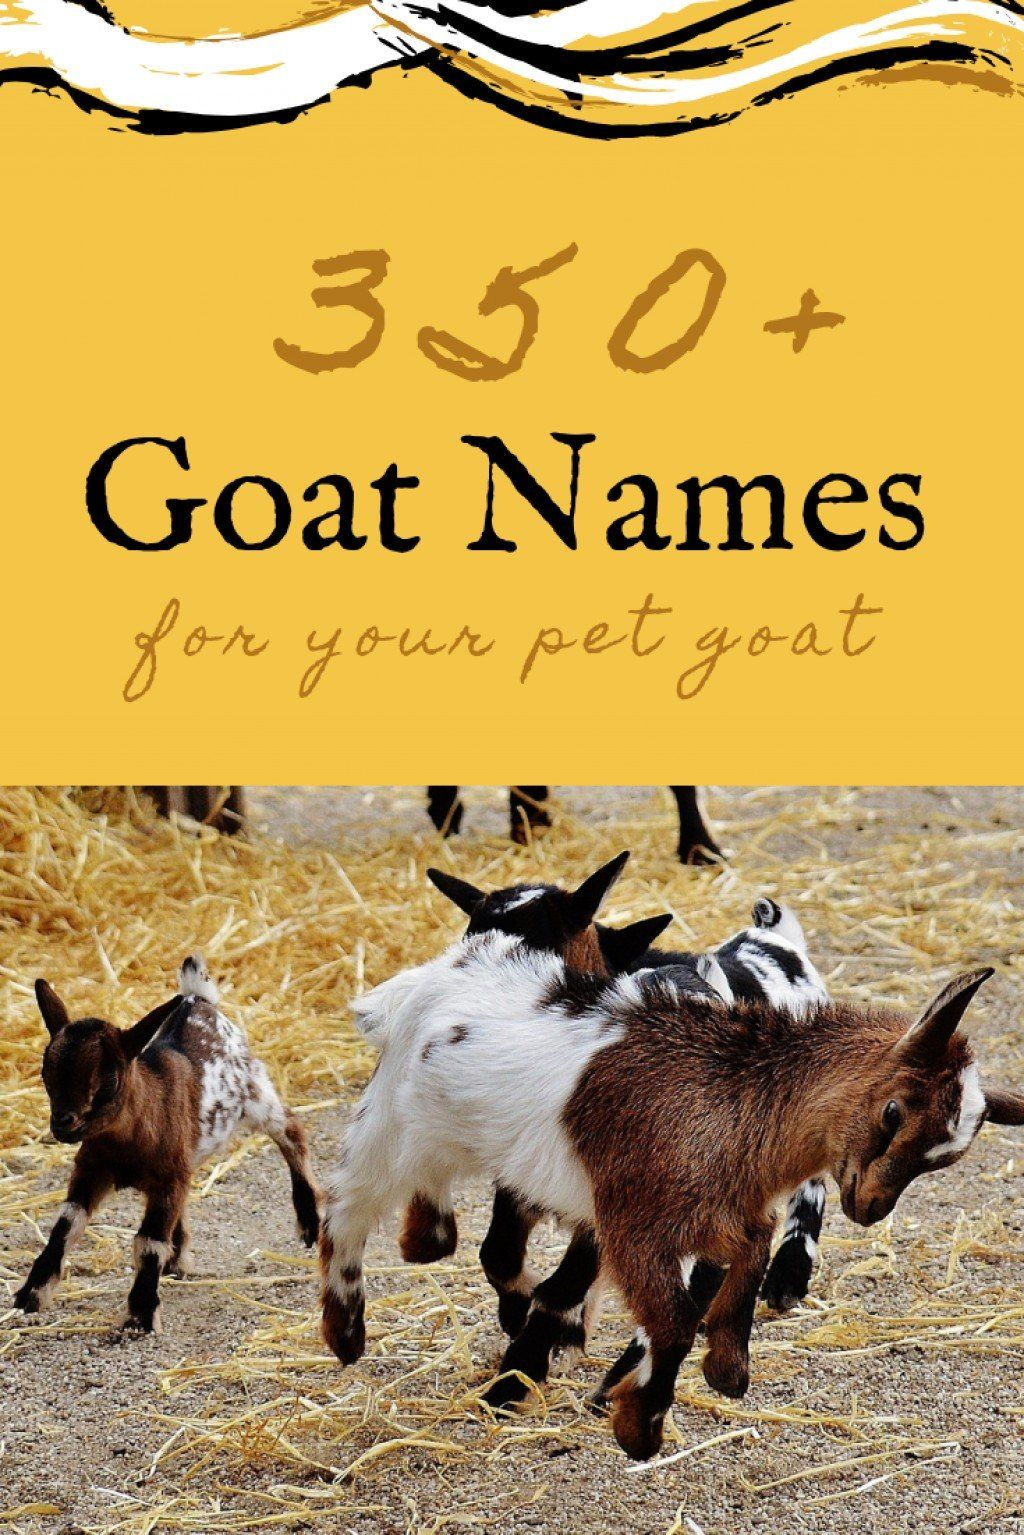 350+ Pet Goat Names for Your New Goat (From Angus to